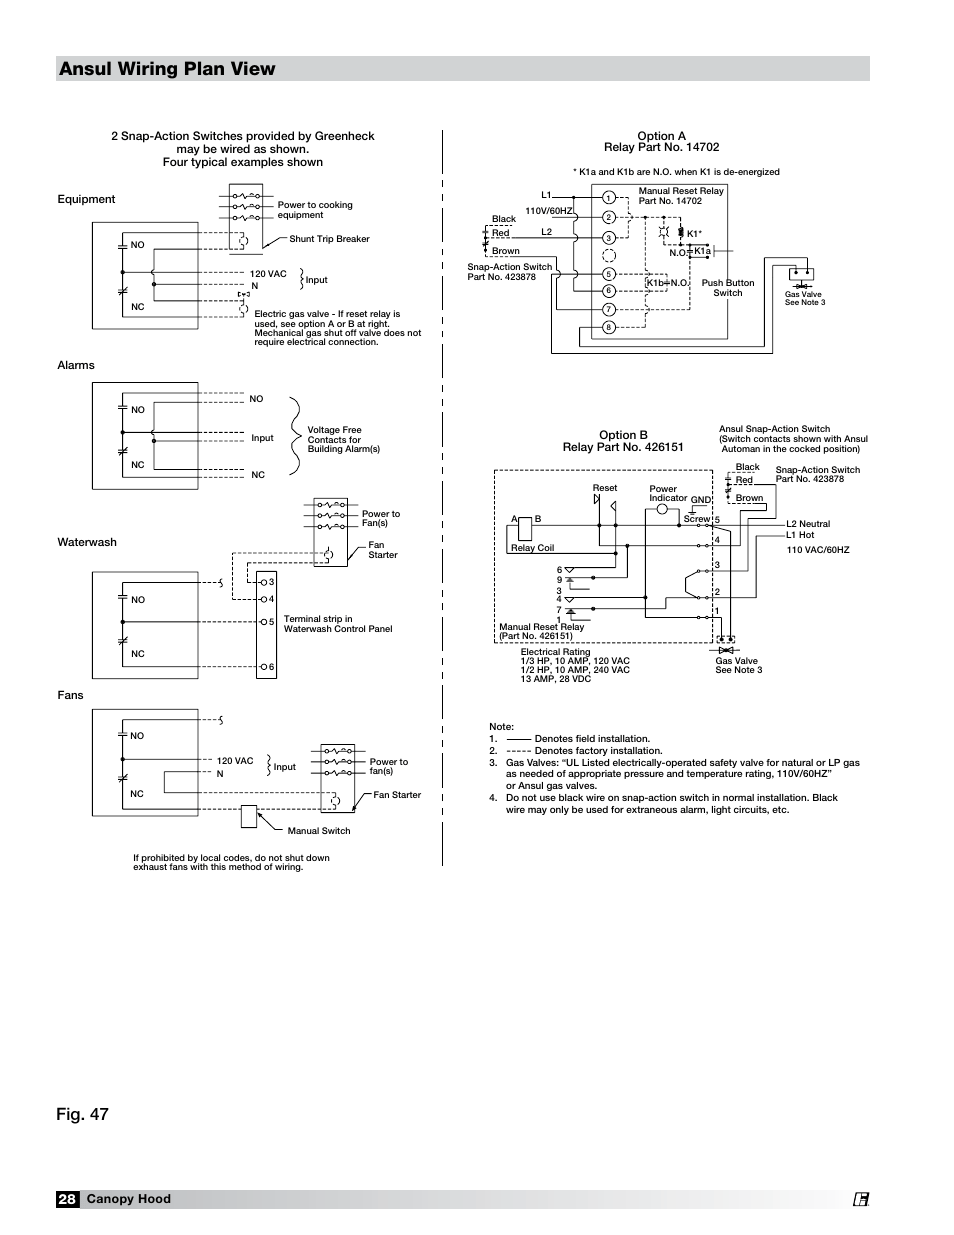 Greenheck kitchen hood wiring diagram free download wiring diagrams famous ansul system wiring diagram photos best images for wiring rh oursweetbakeshop info swarovskicordoba Gallery